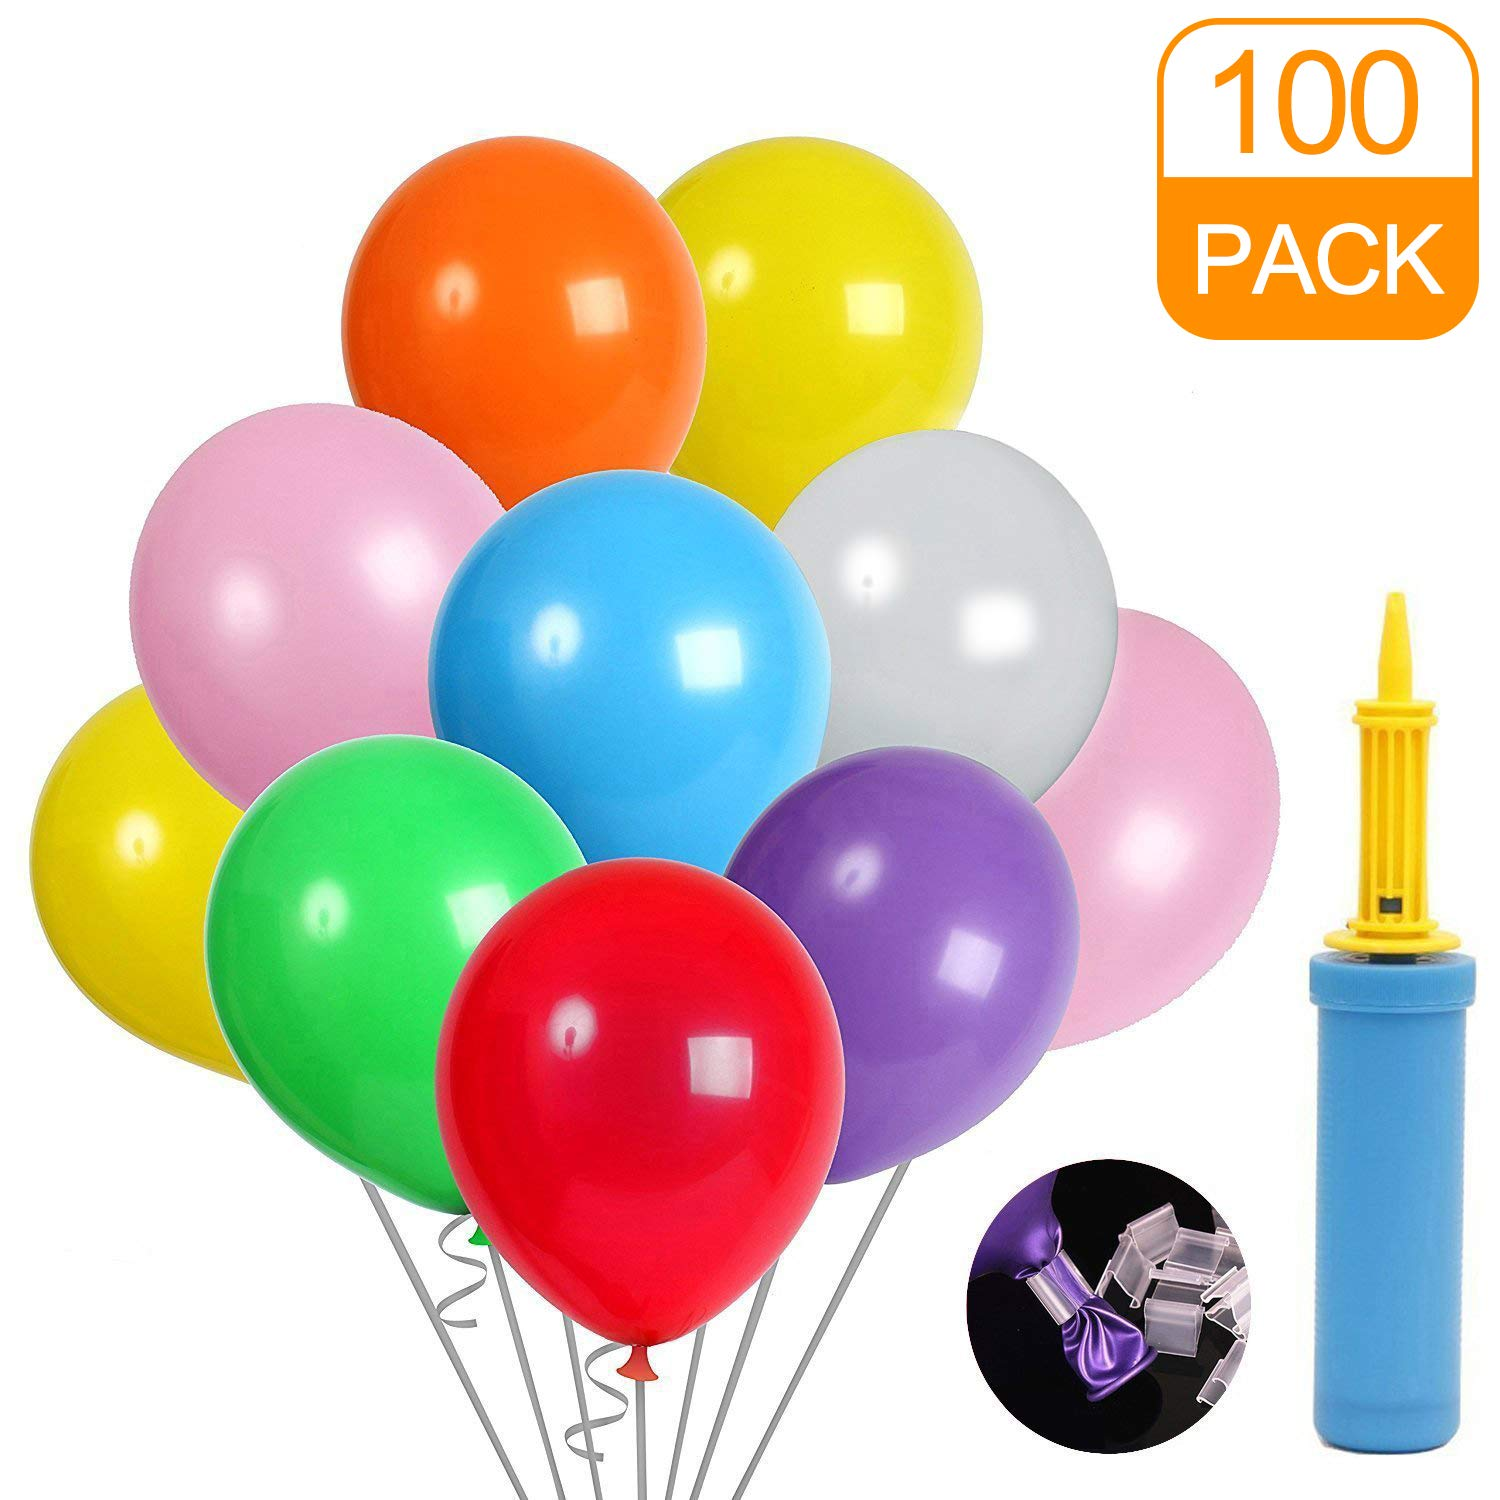 Balloons 100 Pack Assorted Colored and Balloon Pump and Balloon Clip for Wedding Graduation Birthday Party Decoration Supplies